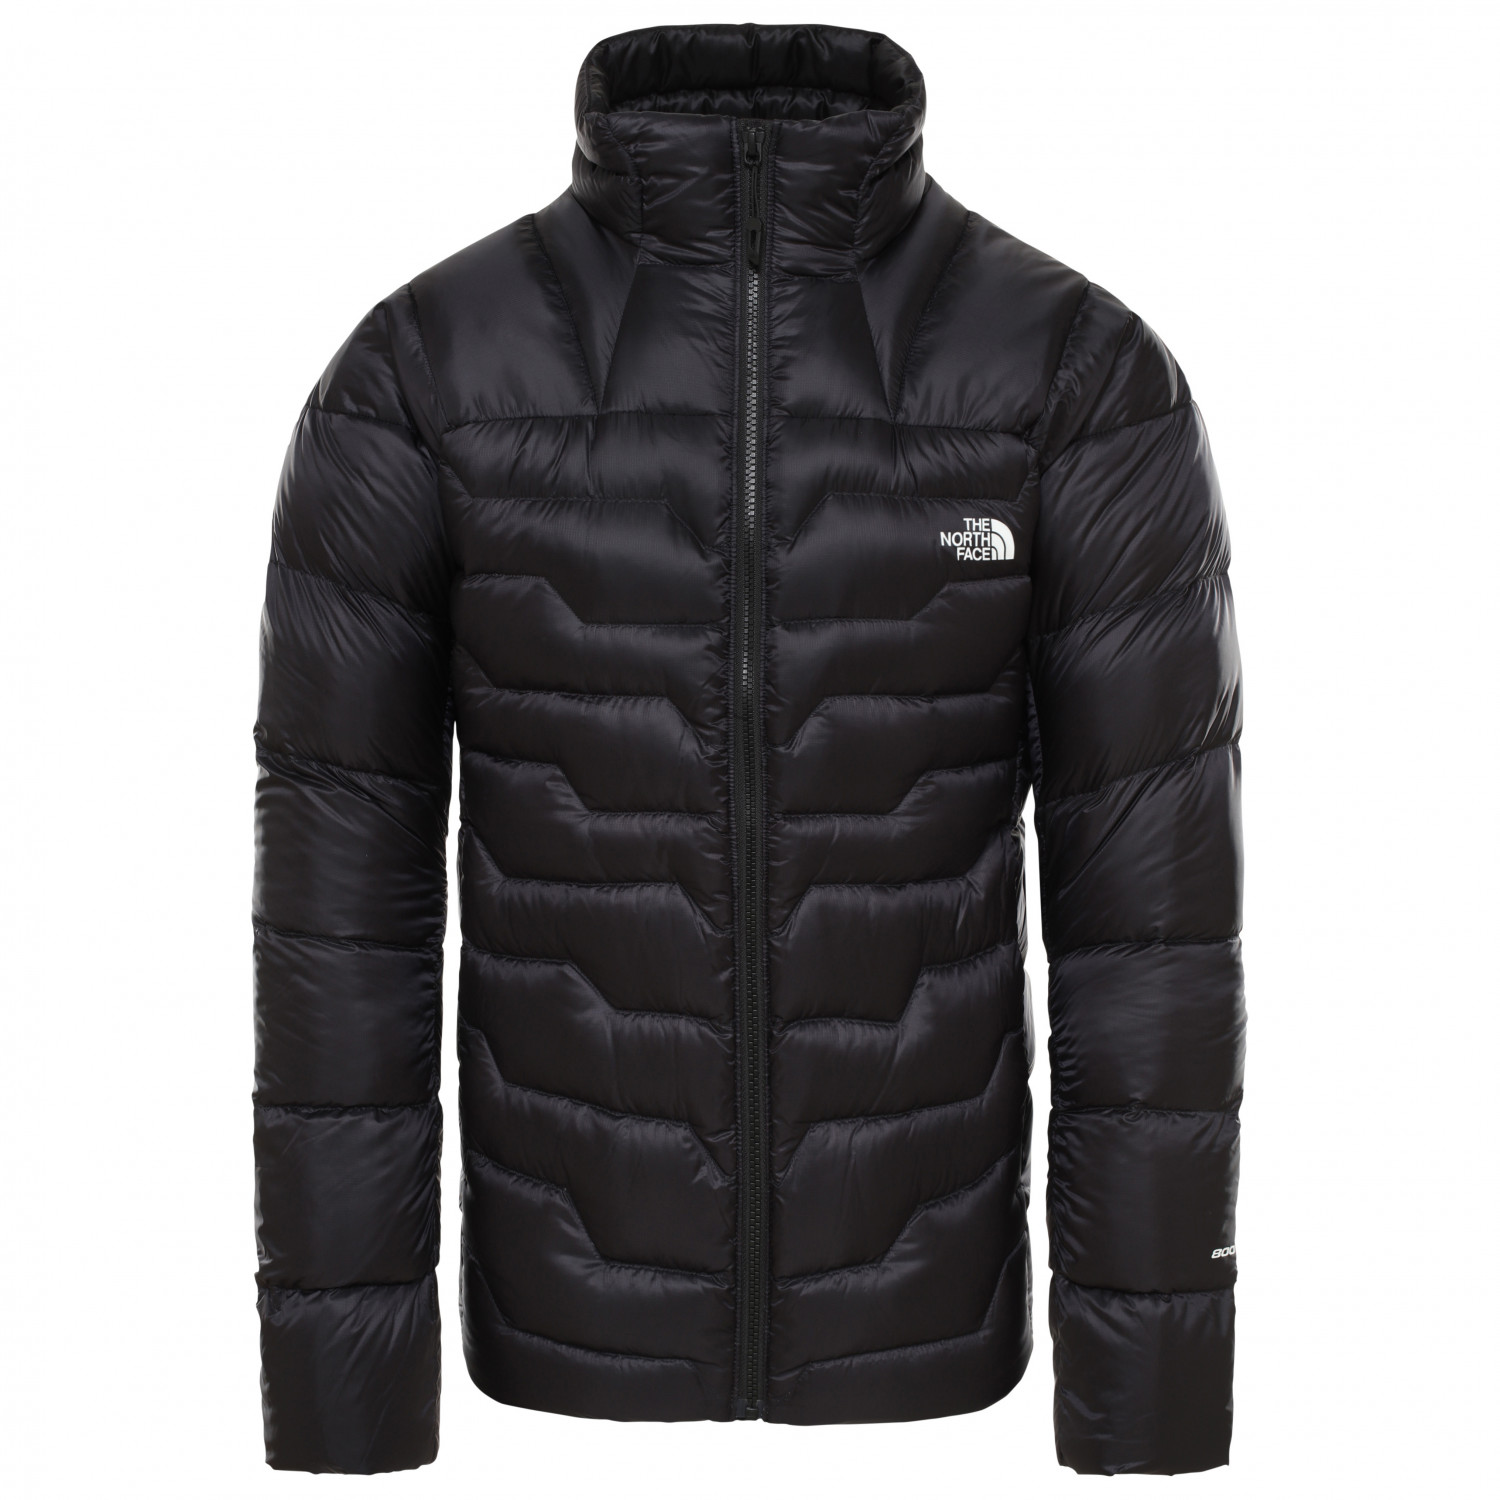 The North Face Impendor Down Jacket Down jacket TNF Black   S